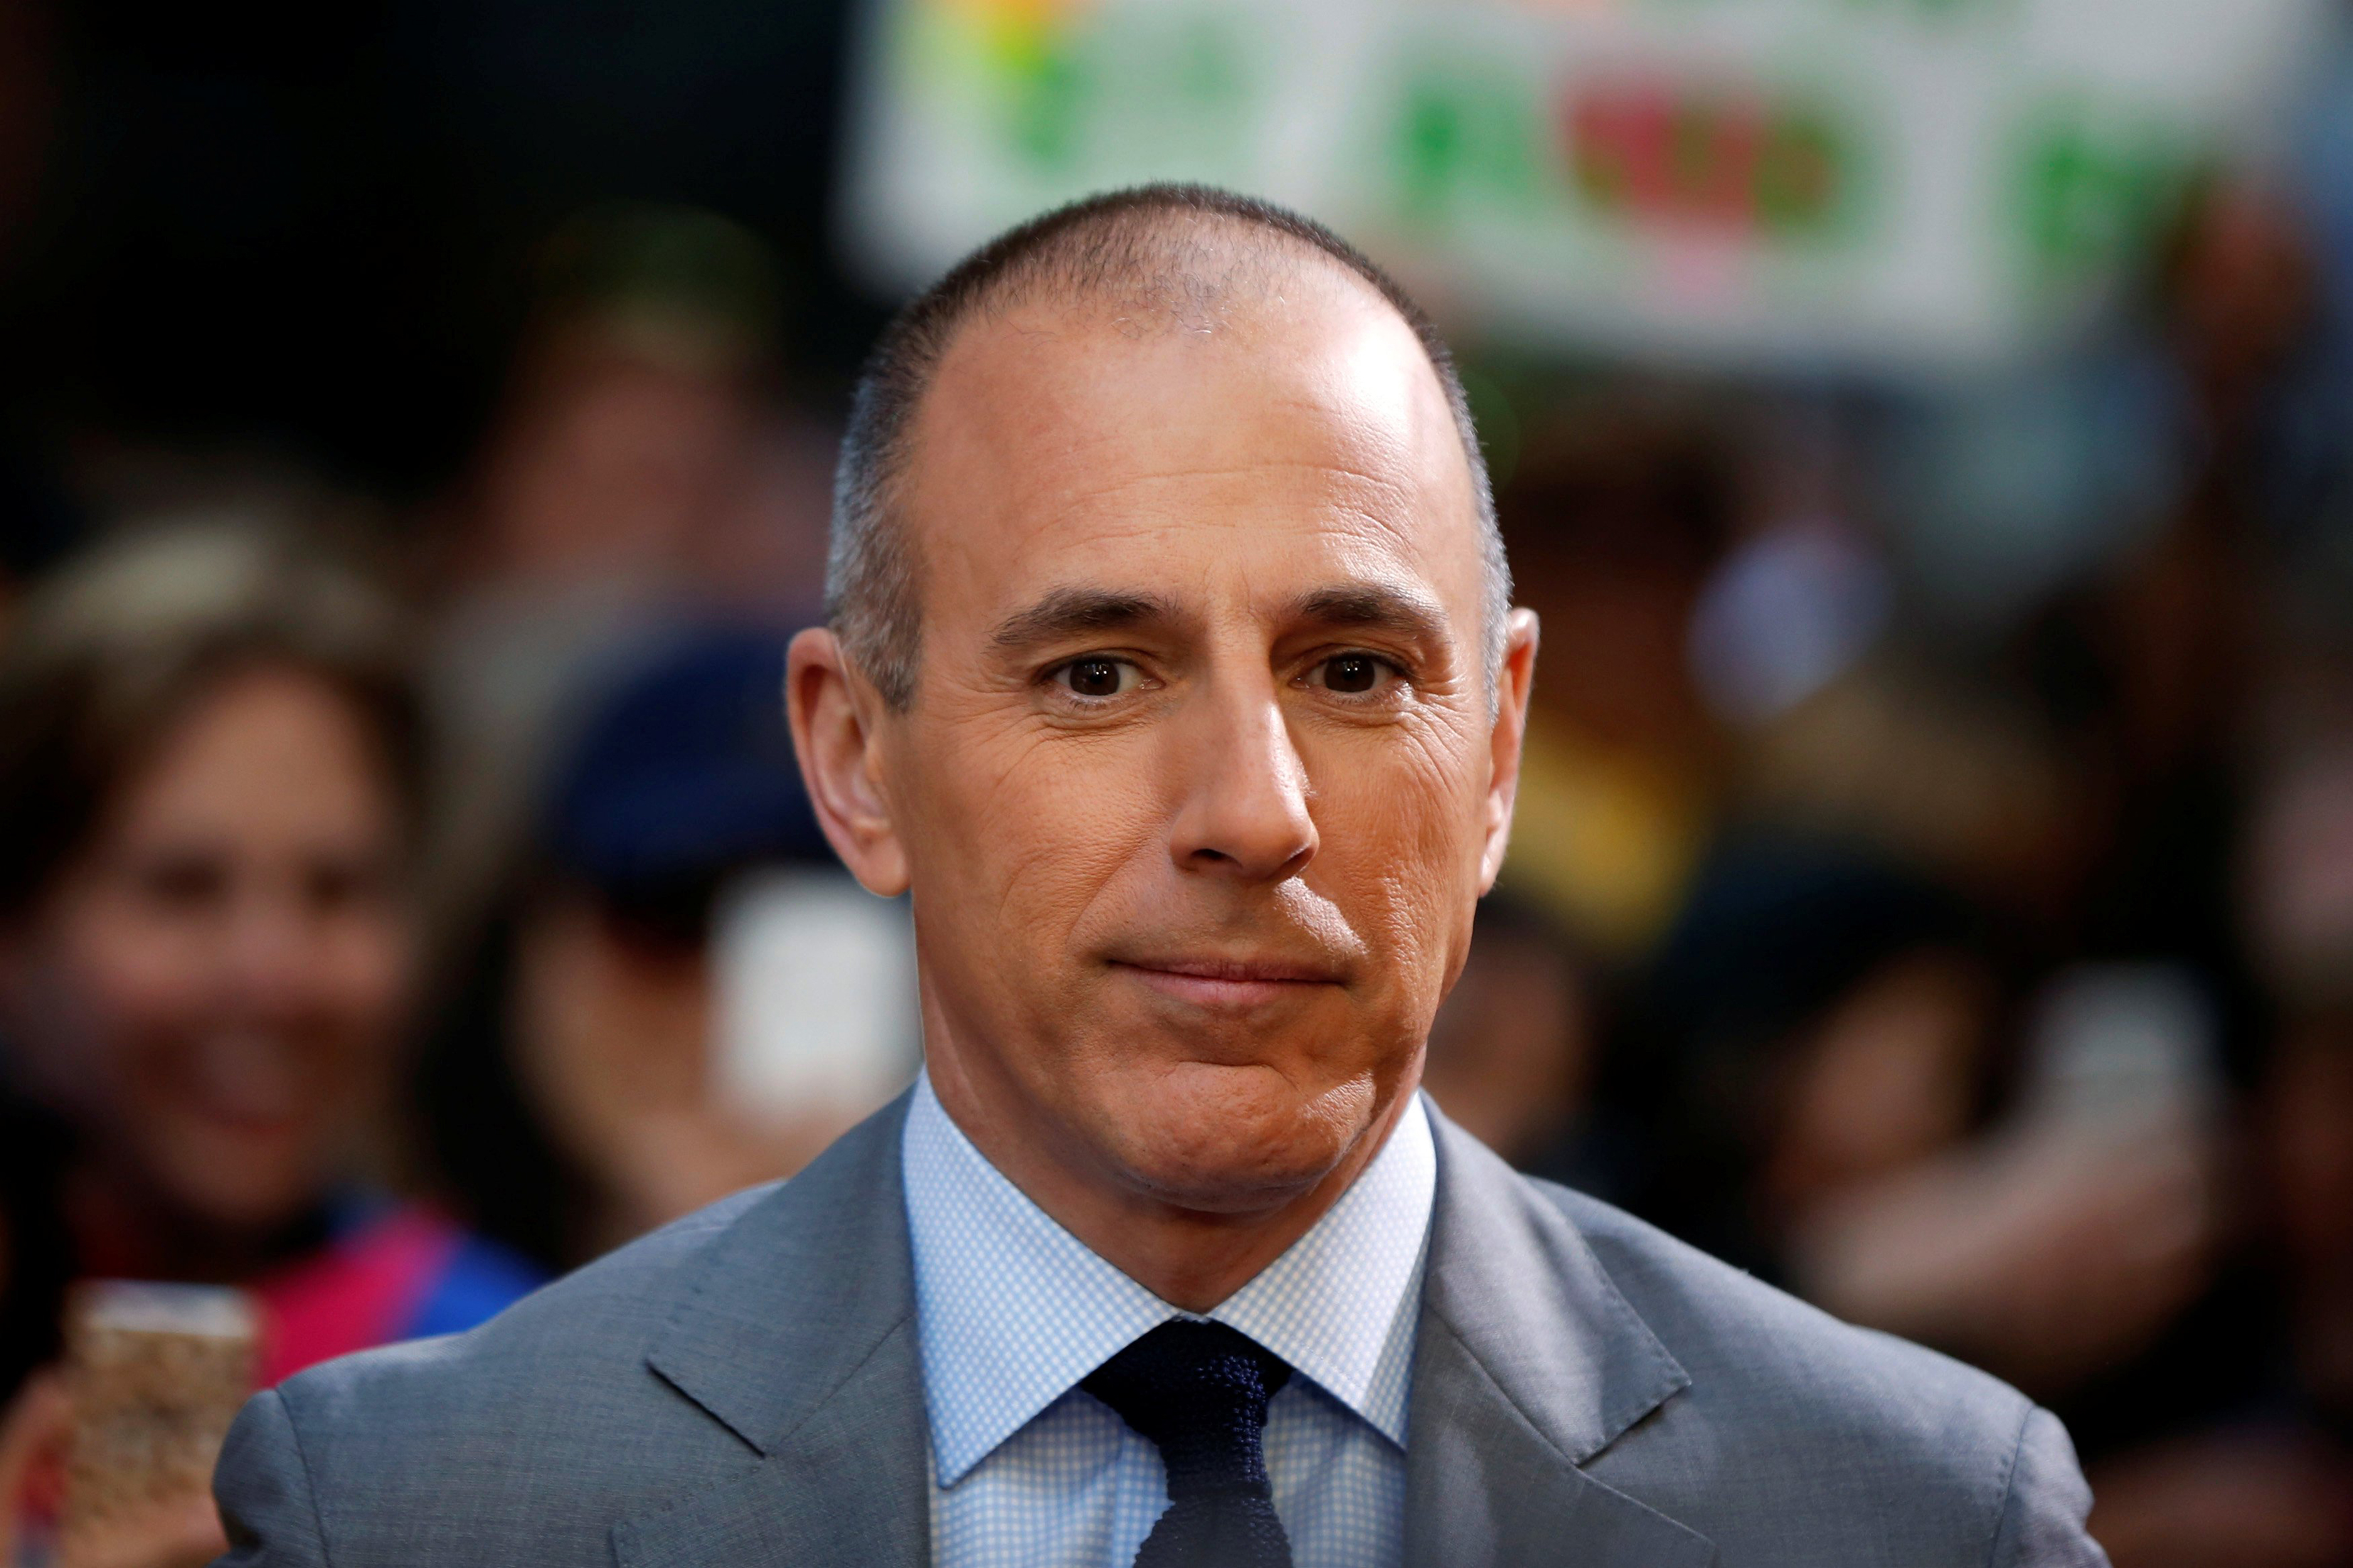 Matt-Lauer-accused-of-raping-NBC-colleague,-book-alleges